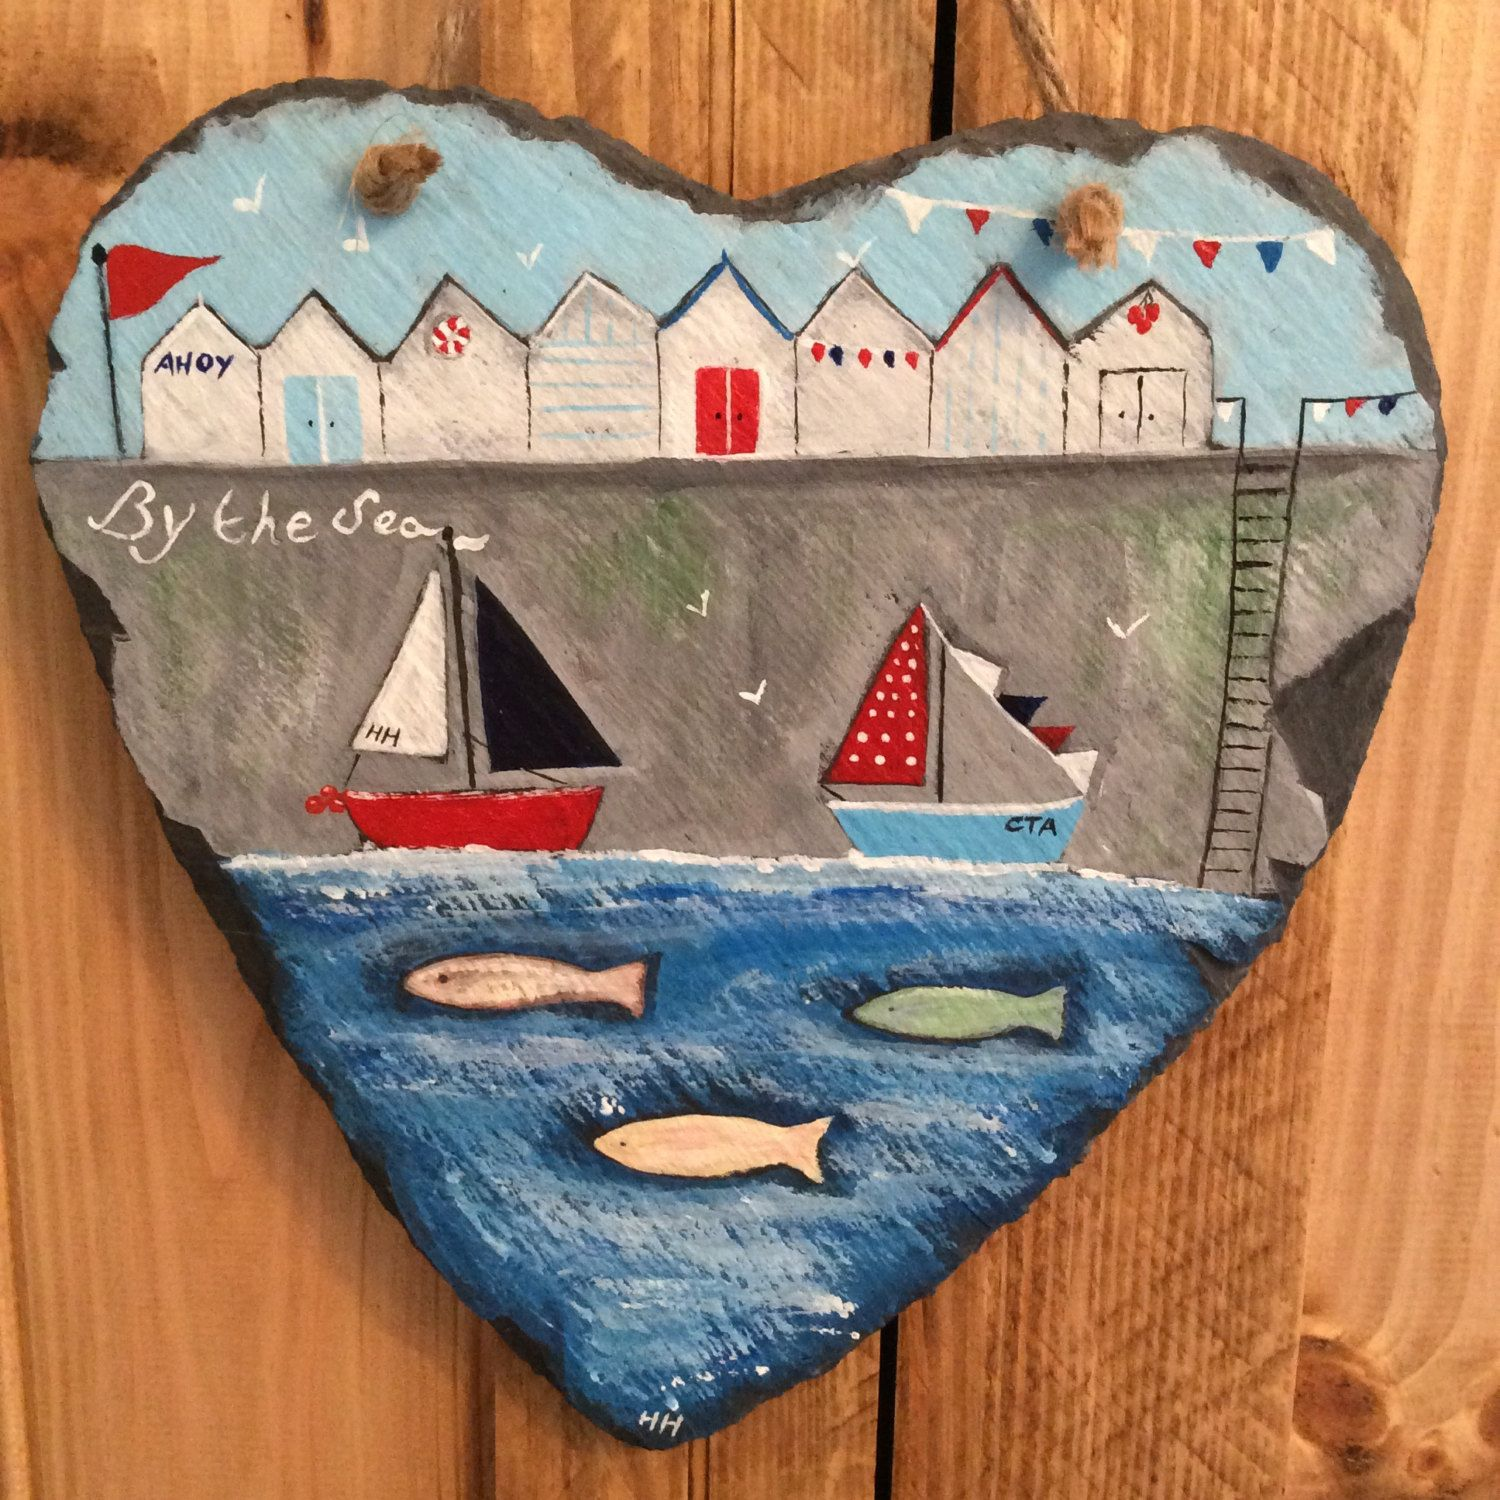 Row of beach huts curved fused glass table clock - By The Sea Hand Painted Slate Art Heart Seaside Nautical Beach Huts Boats Fish Bunting By Coastal Treasure Art